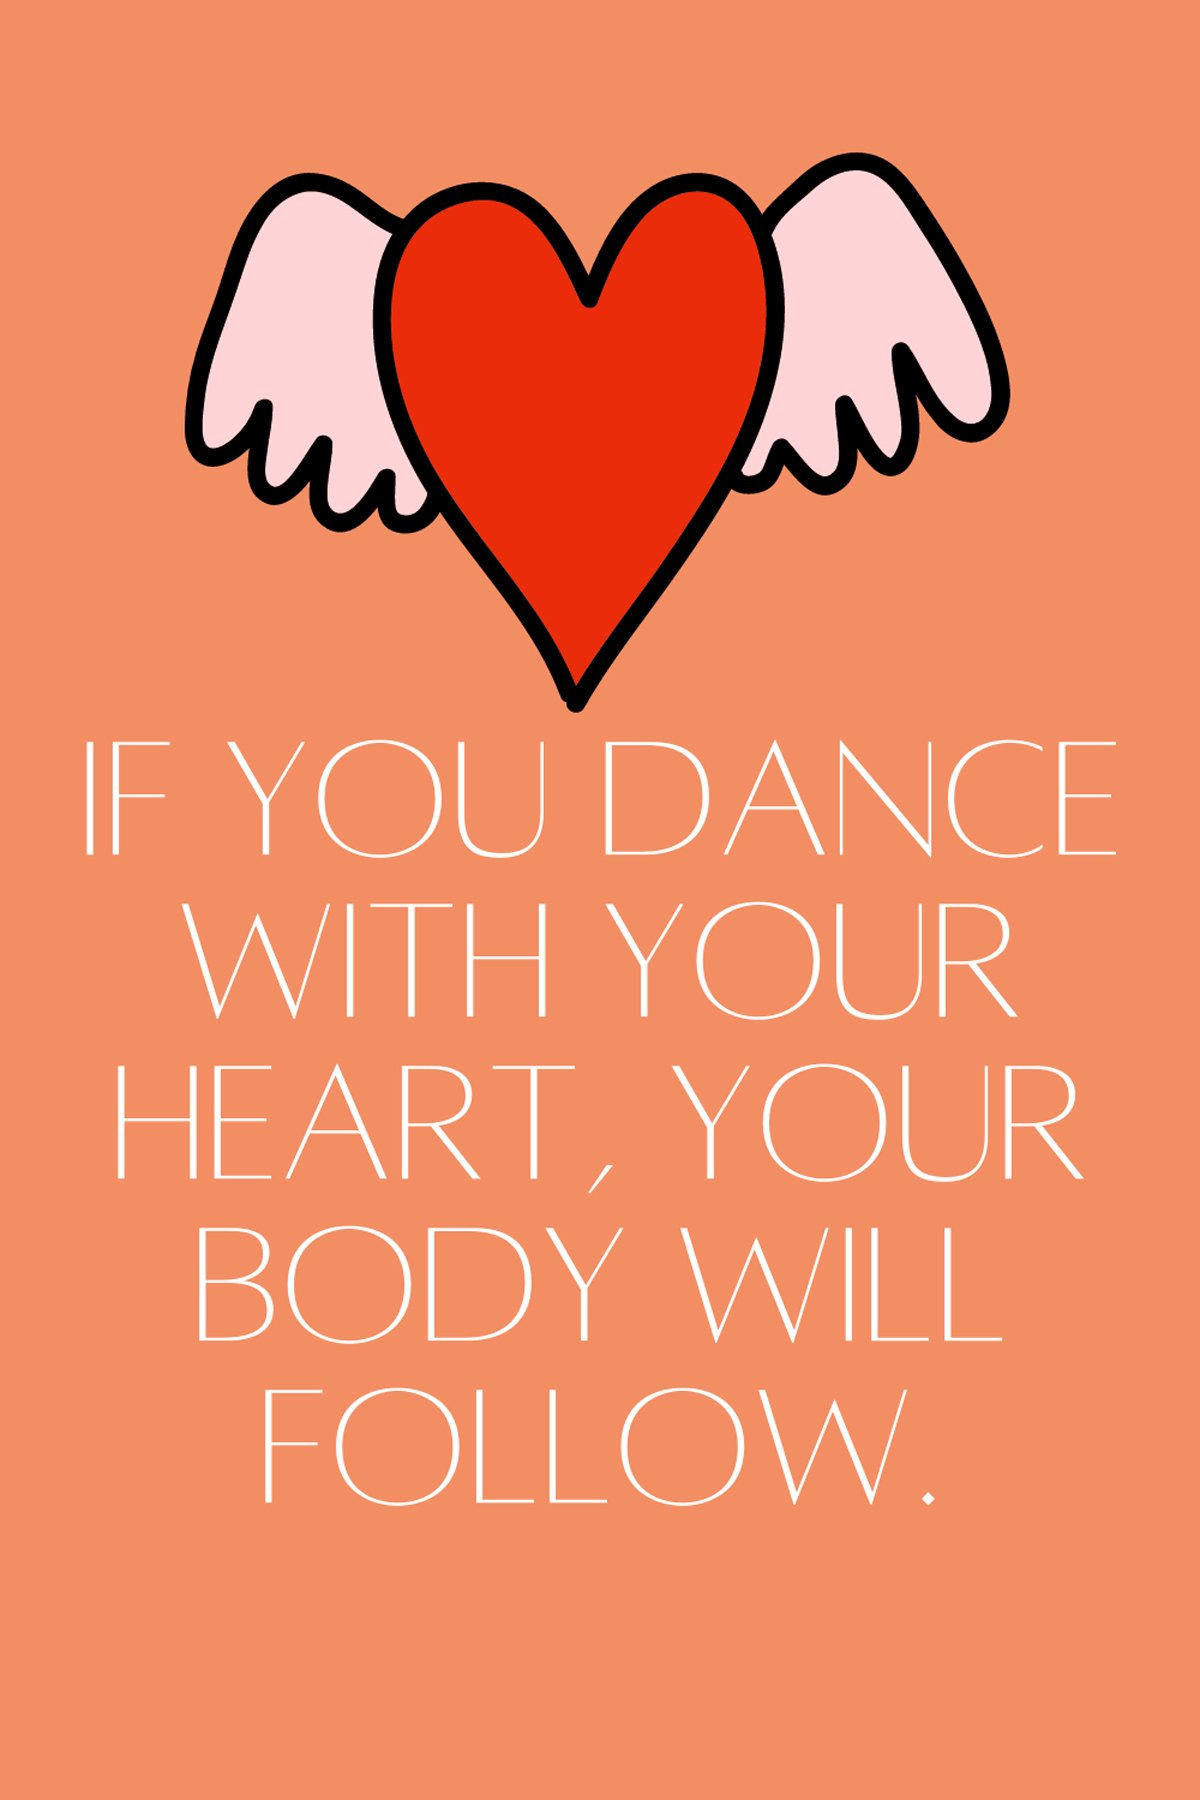 Why I Love Dancing Quotes